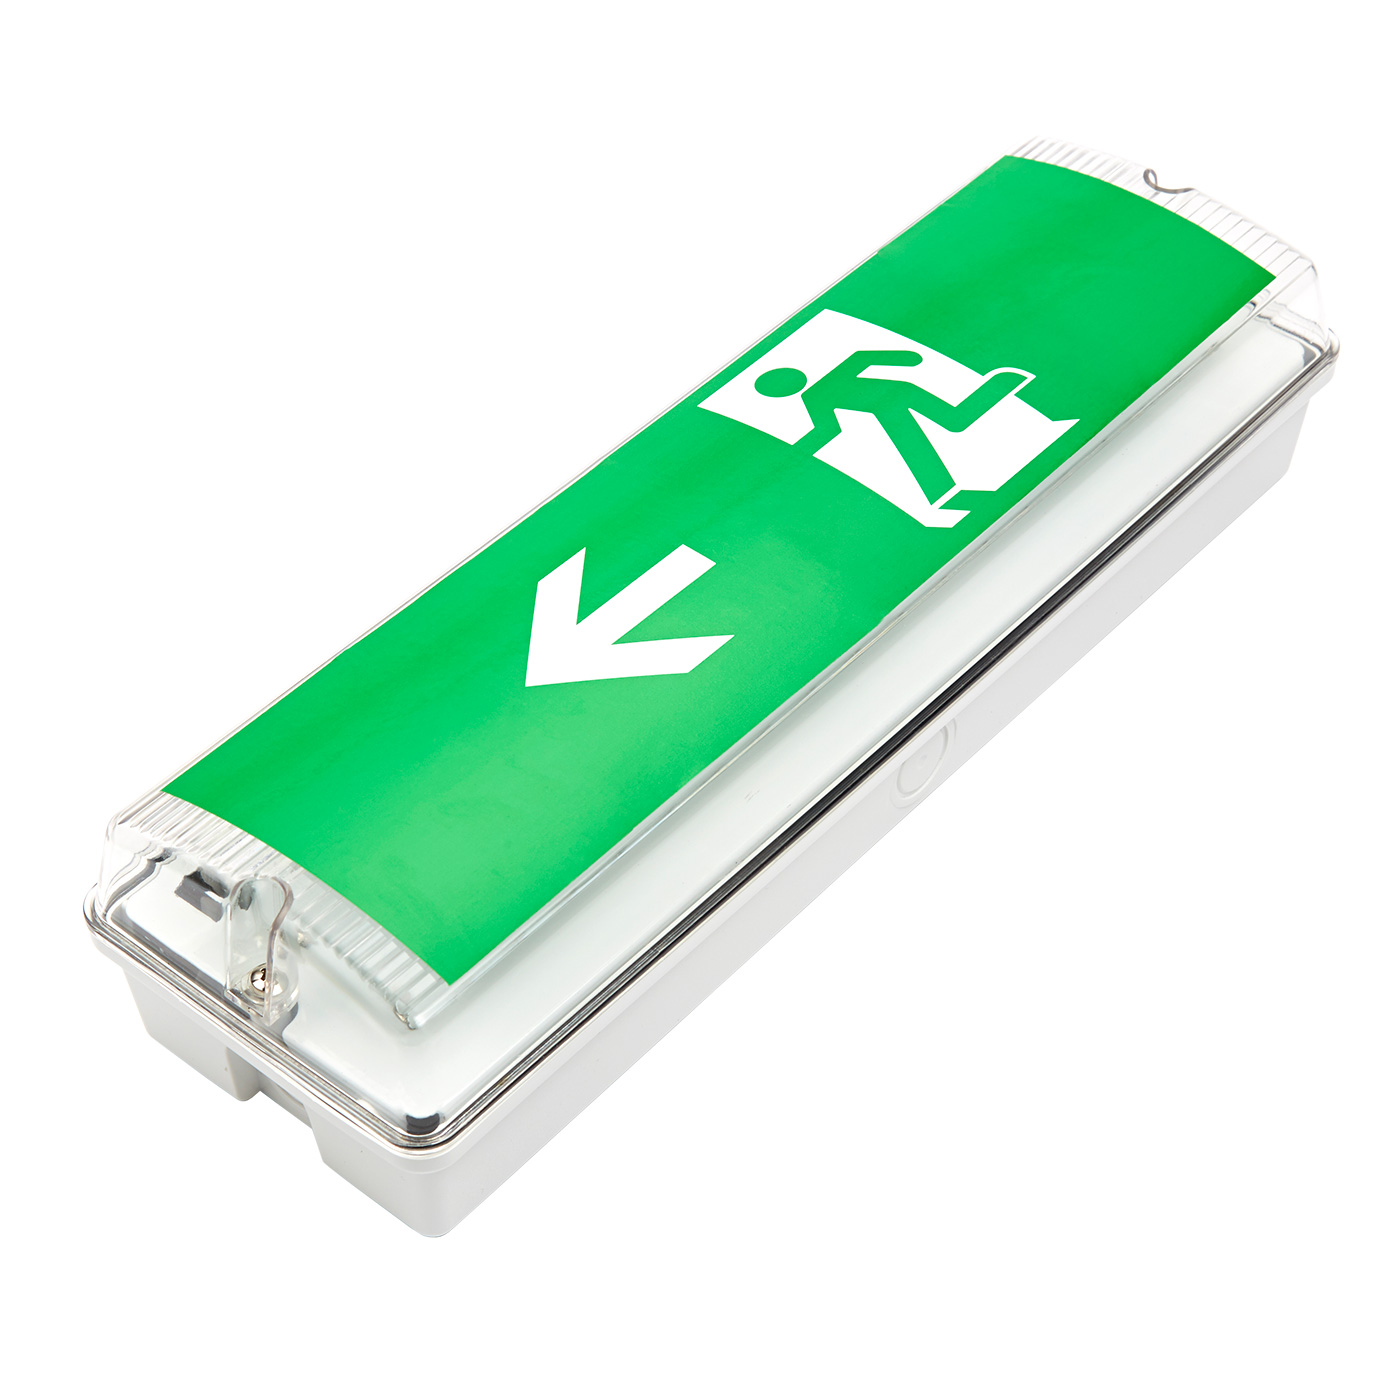 Biard Left Exit Sign Emergency Light - Maintained or Non Maintained